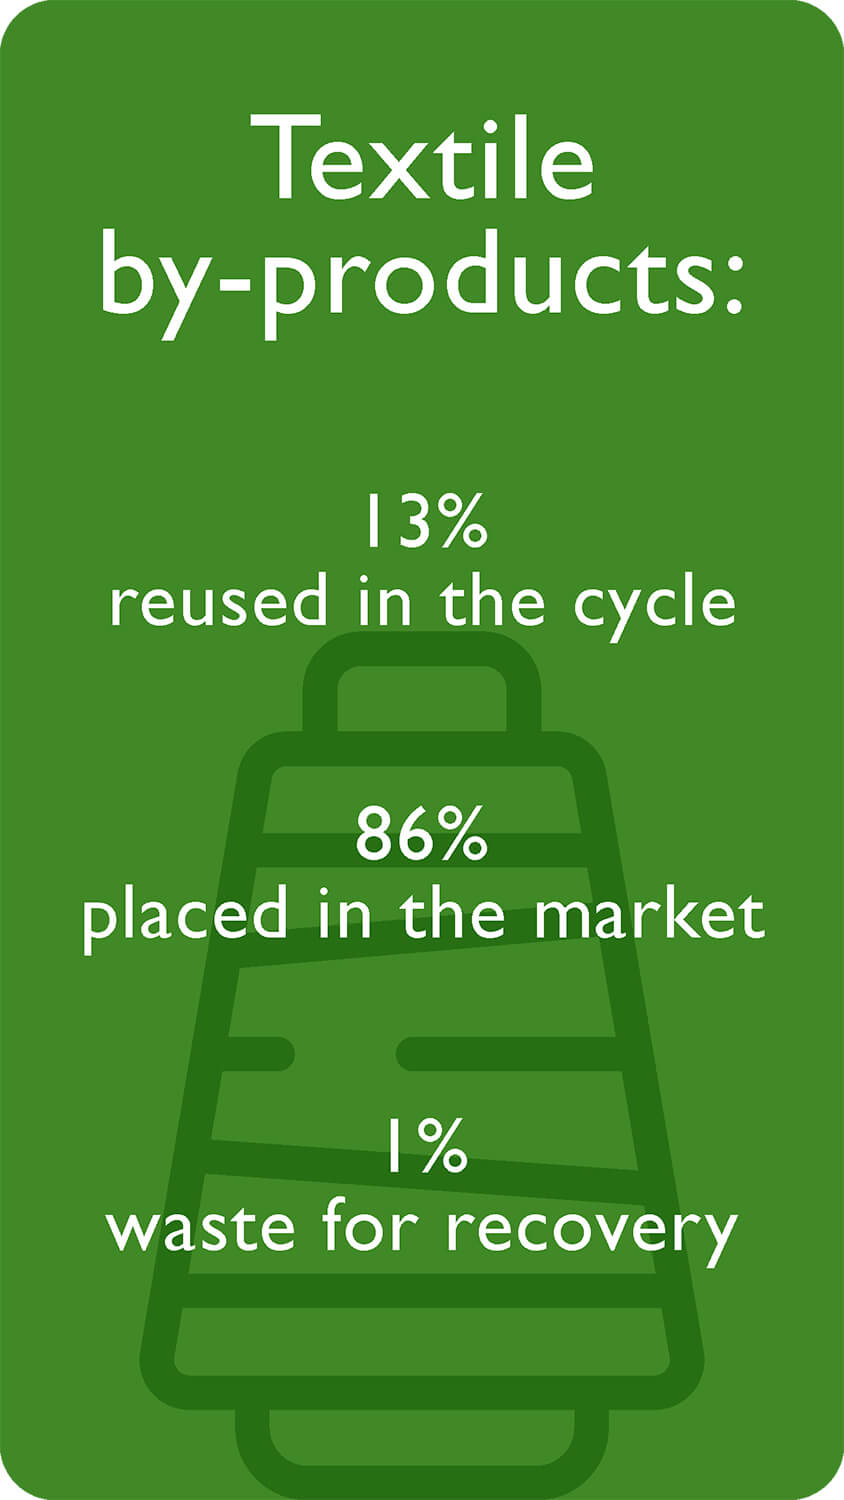 Textile by-products 13% reused in the cycle 86% placed in the market 1% waste for recovery